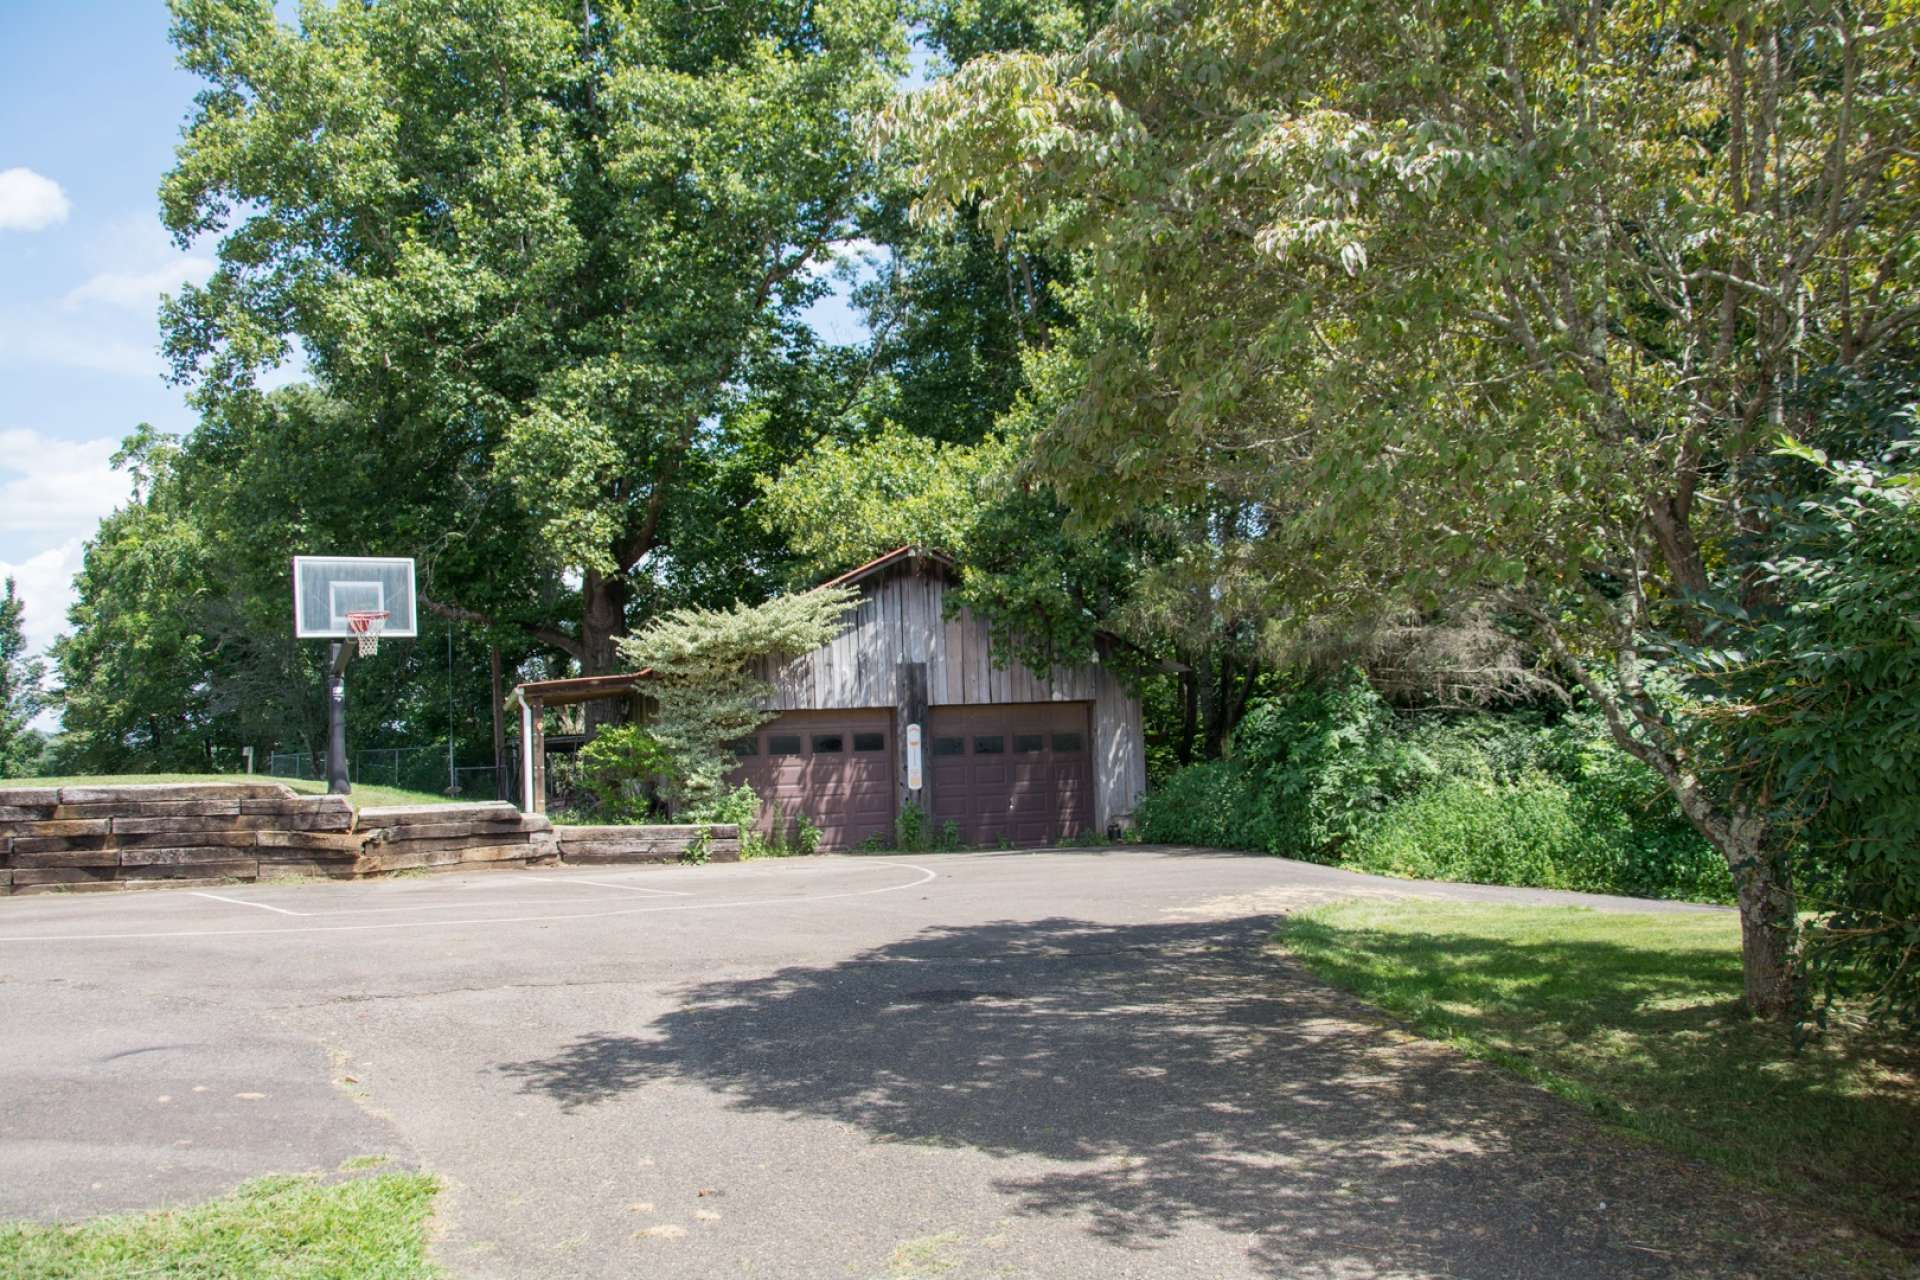 An added bonus is the detached garages, equipment shed, and this paved space that is perfect for parking or basketball.